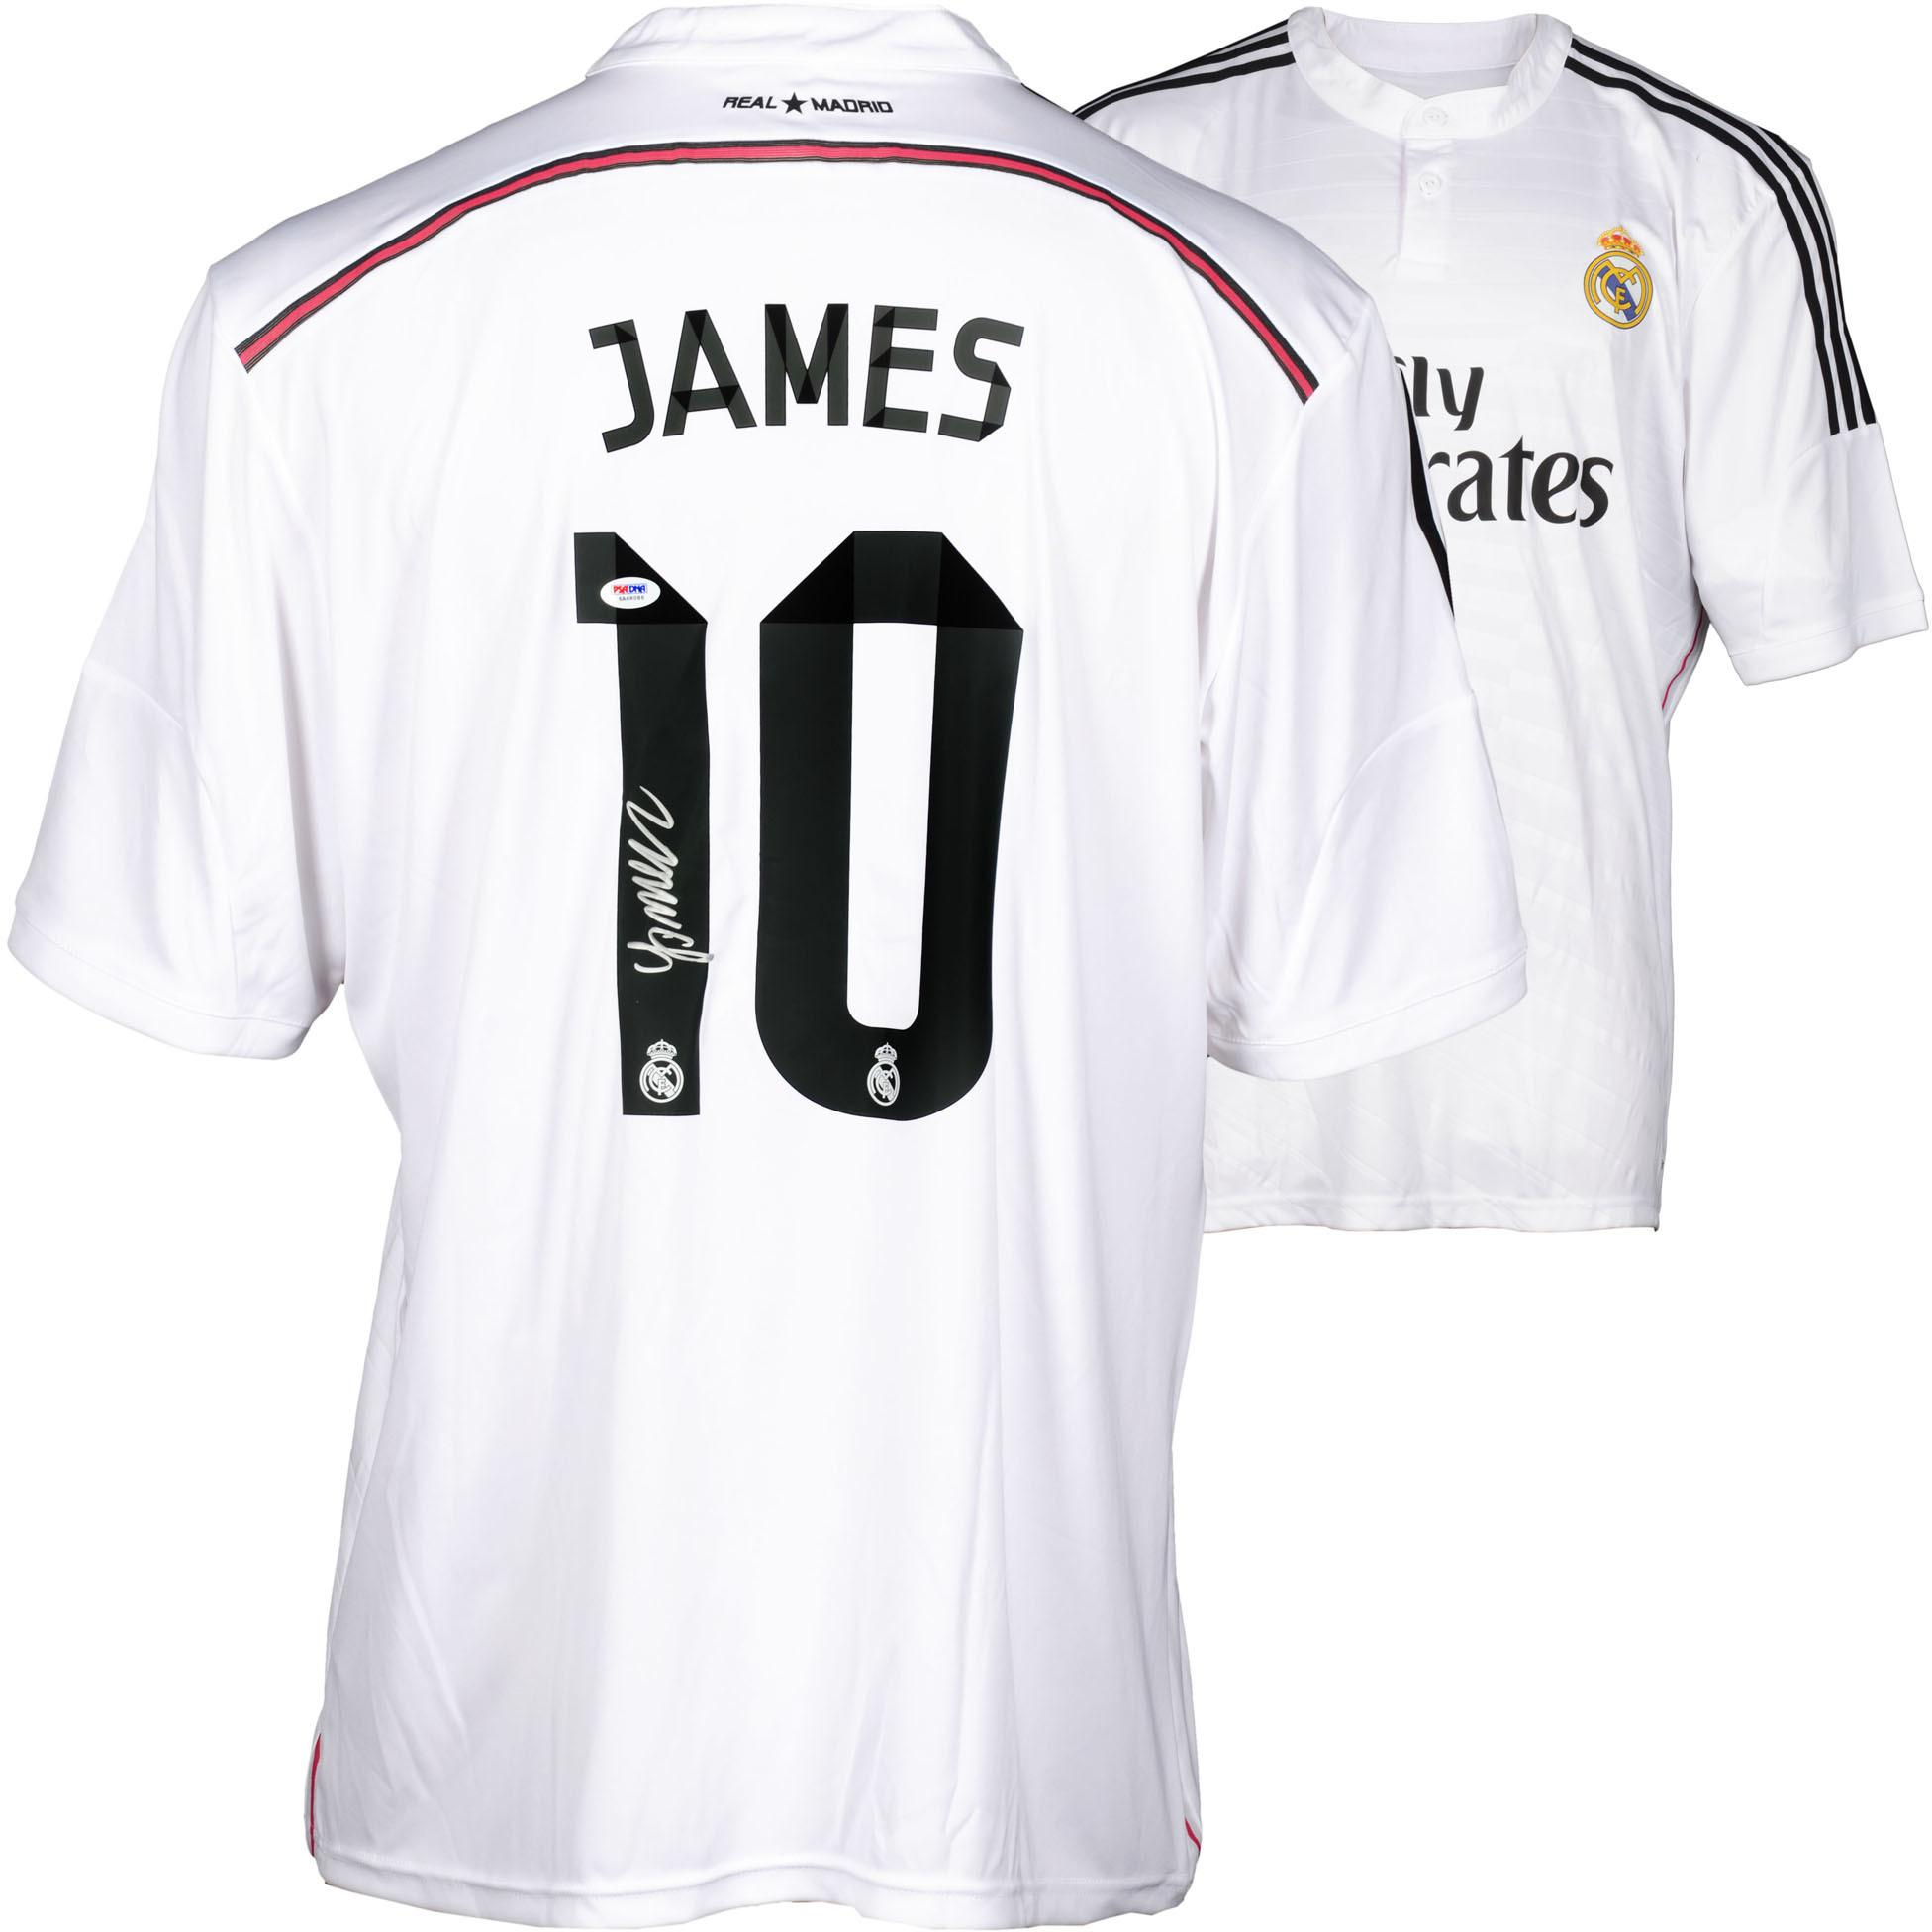 James Rodriguez Real Madrid Autographed White Jersey - Fanatics Authentic Certified